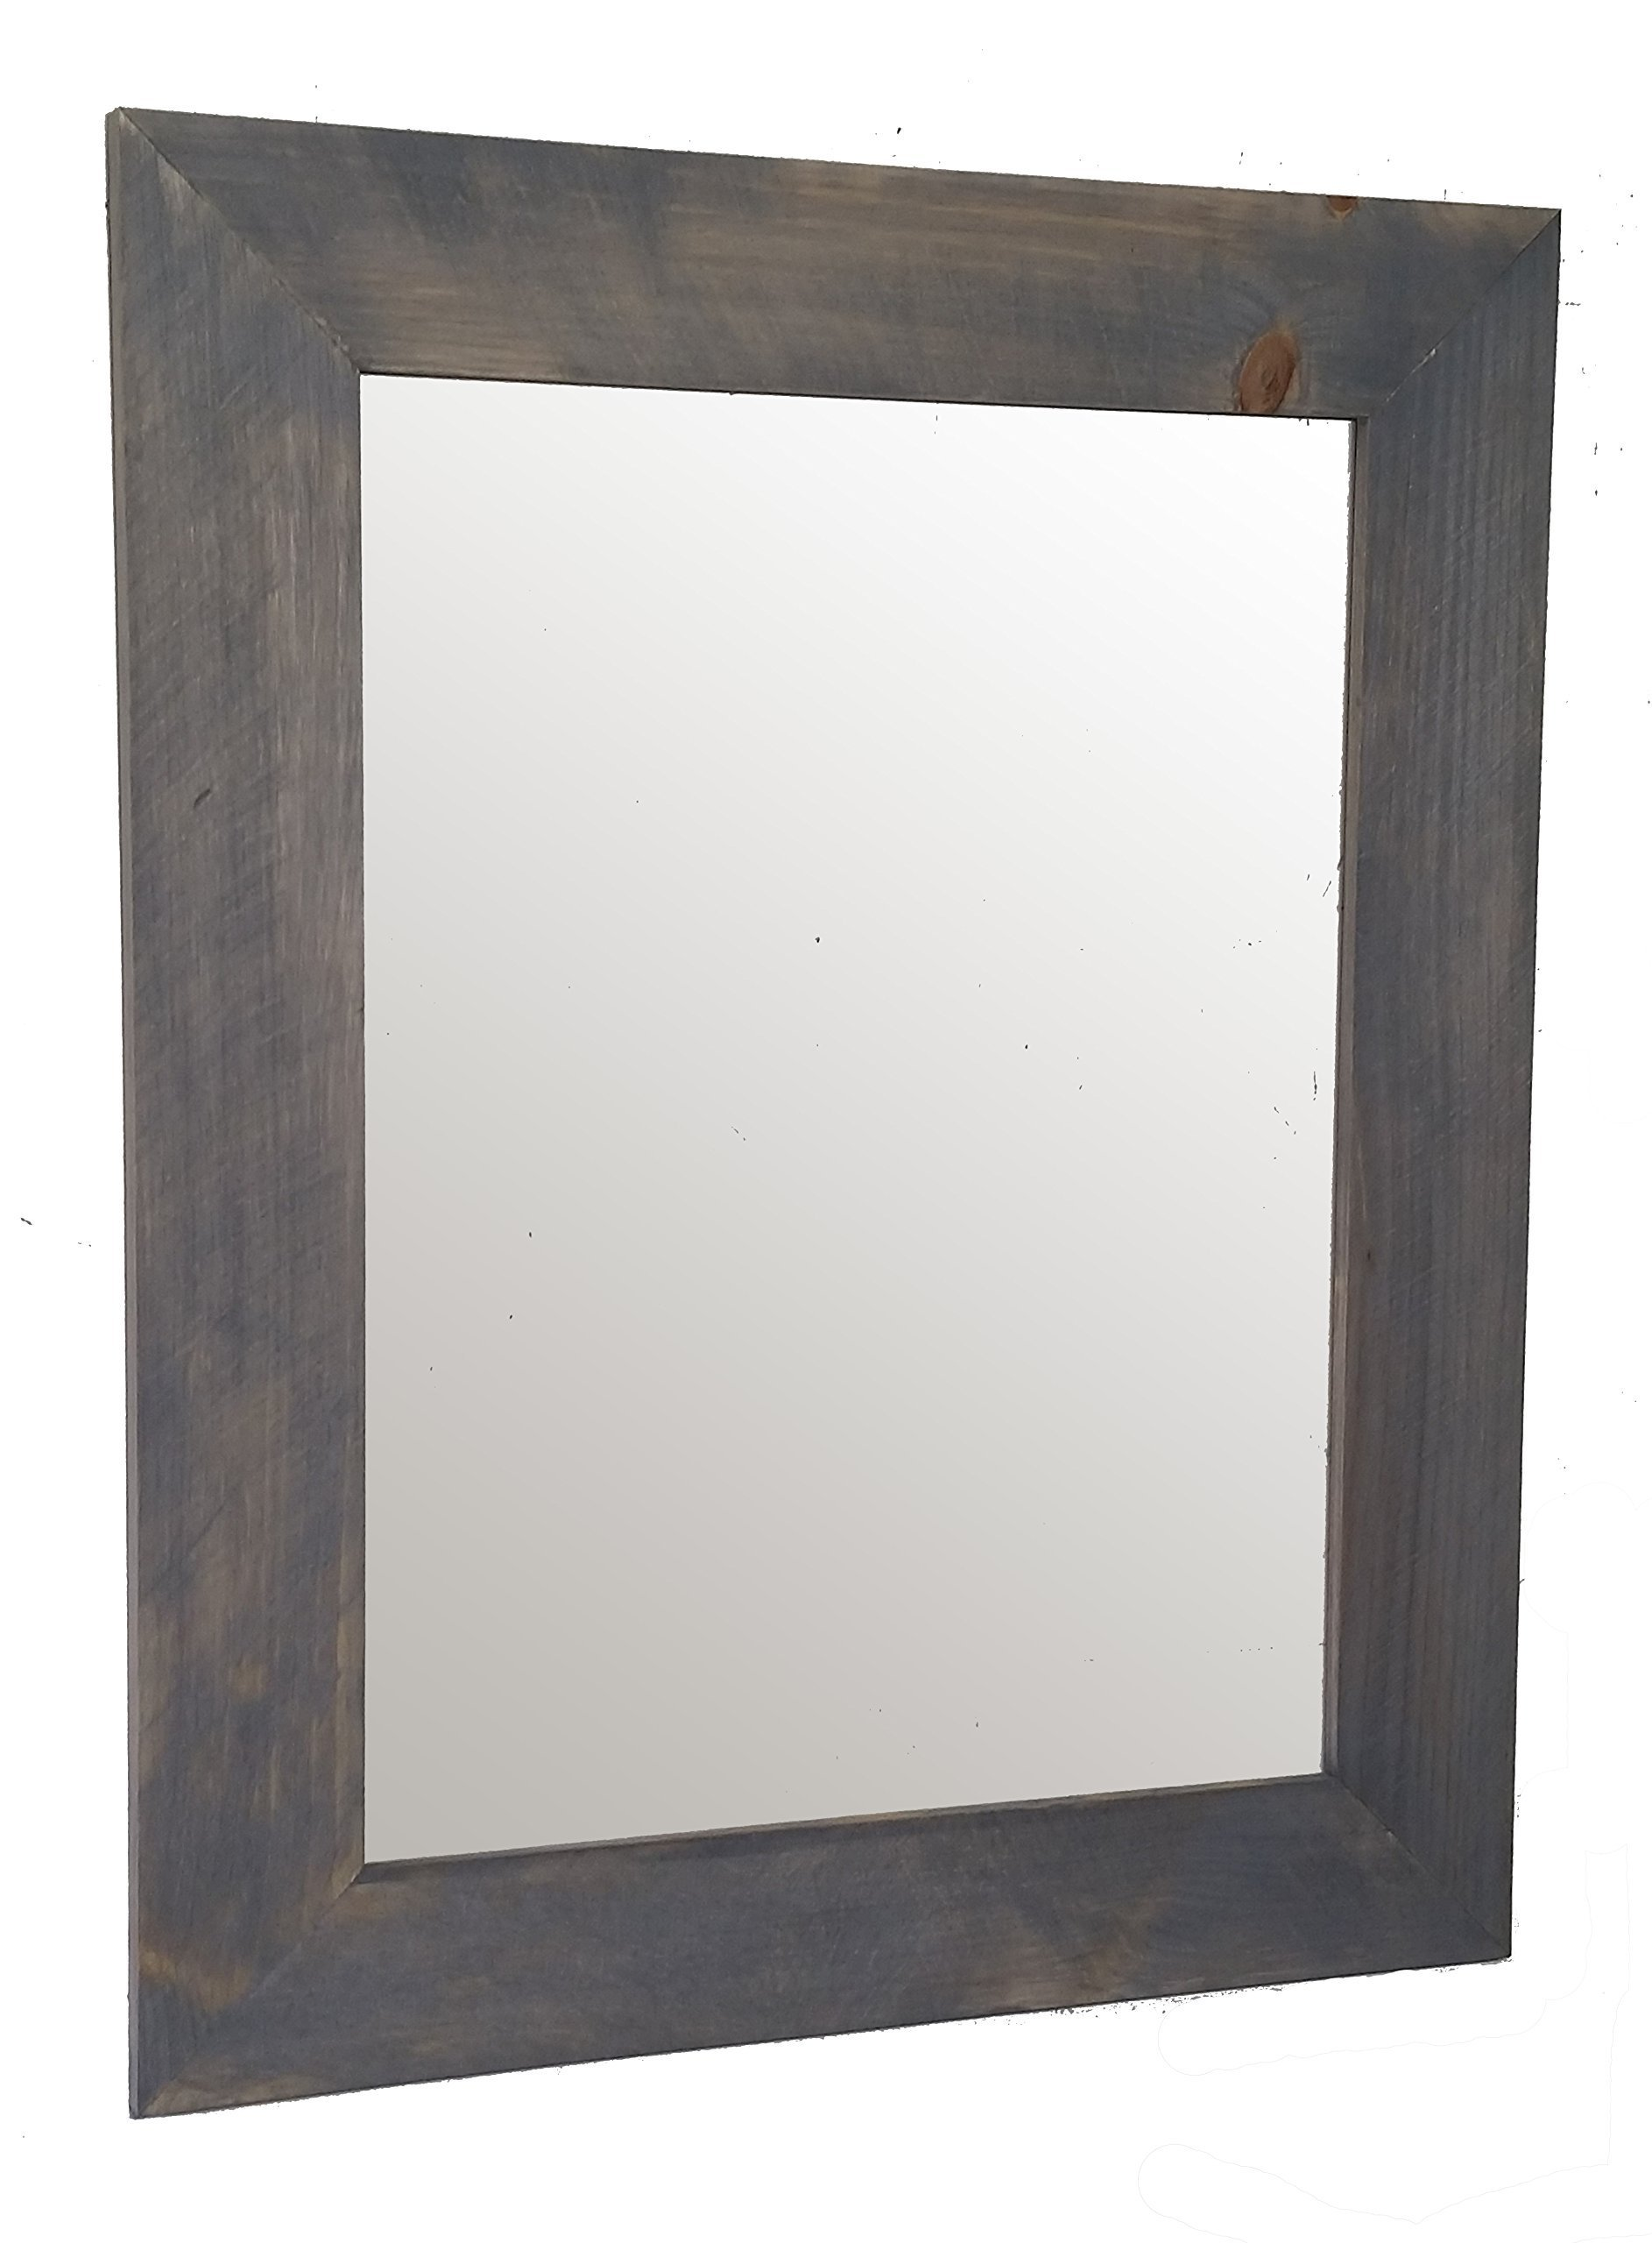 Shiplap Mirror 24 x 30 Vertical Weathered Oak Stain Reclaimed Wood Mirror - Large Wall Mirror - Rustic Modern Home - Home Decor - Mirror - Housewares - Woodwork - Frame by Renewed Decor